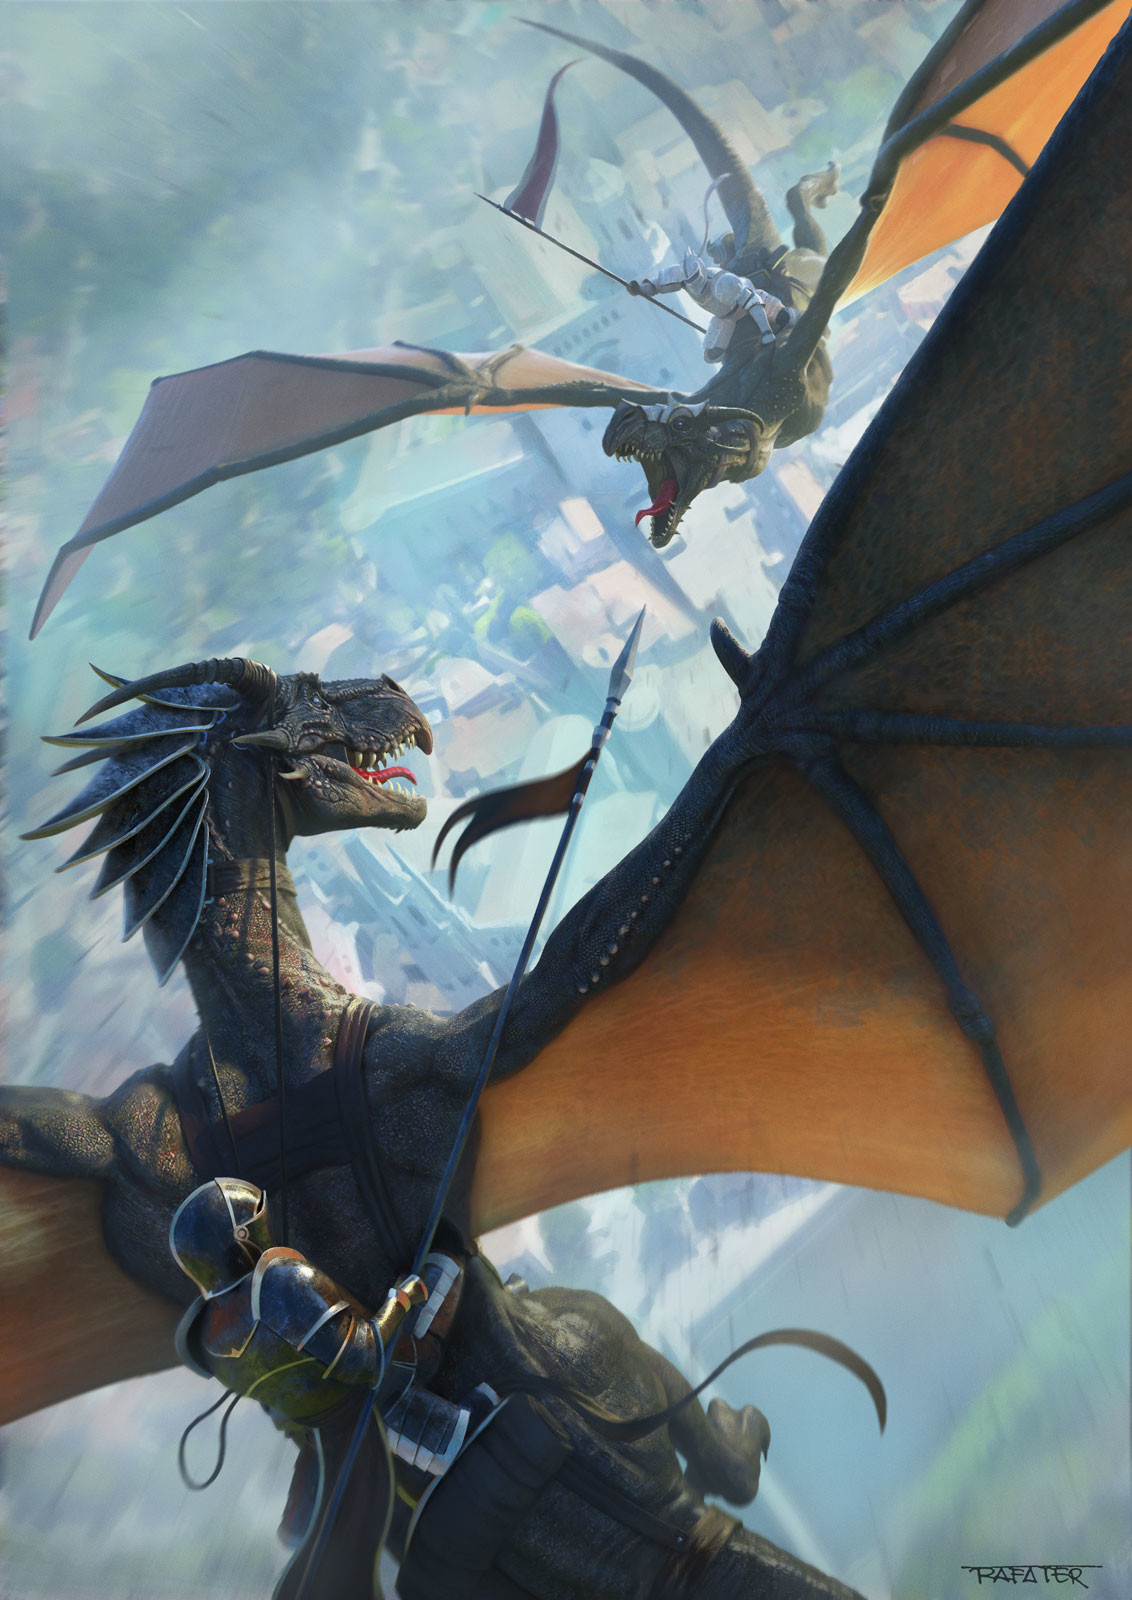 Dragon battle - Girocòmic poster